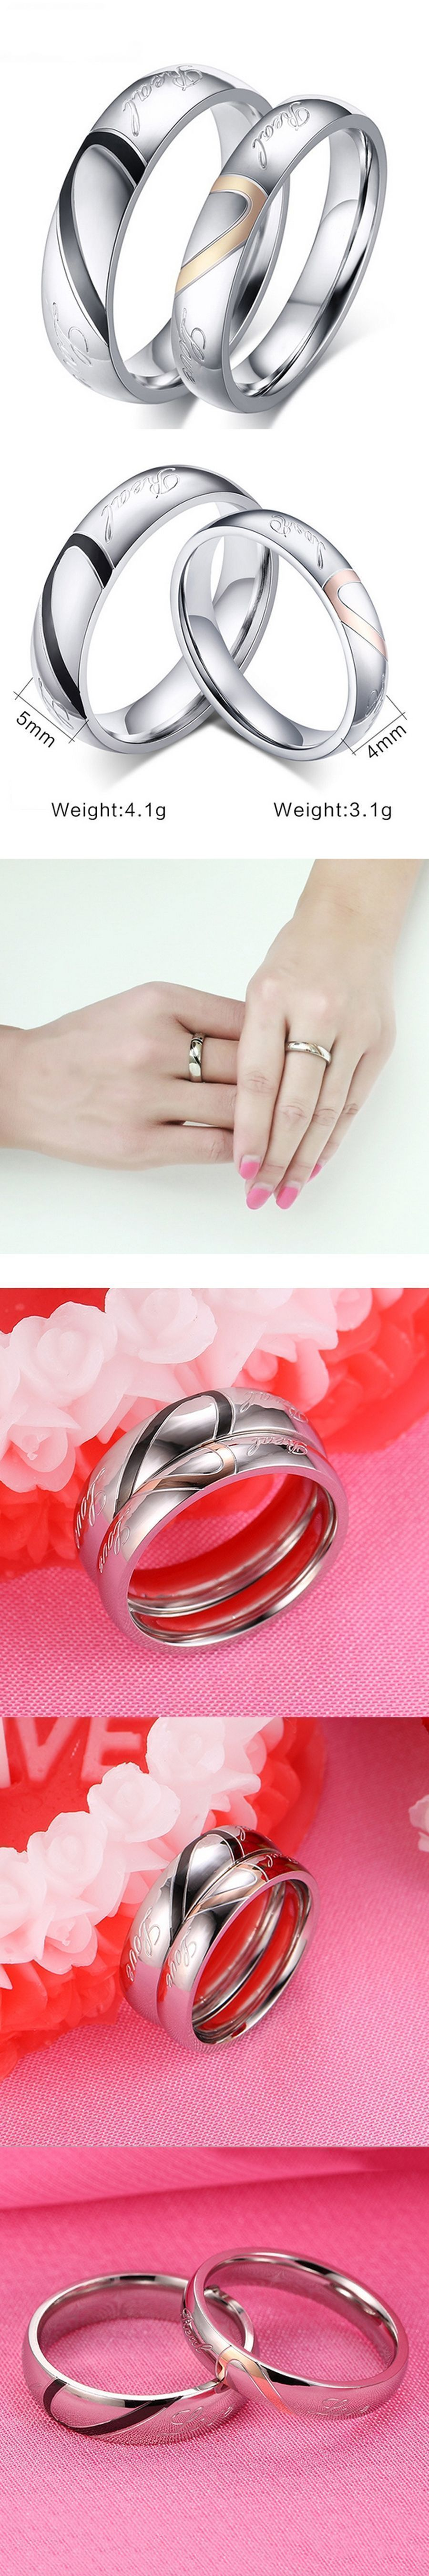 Fashion Love Heart Couple Ring for Women Men With Rings Size 14 ...